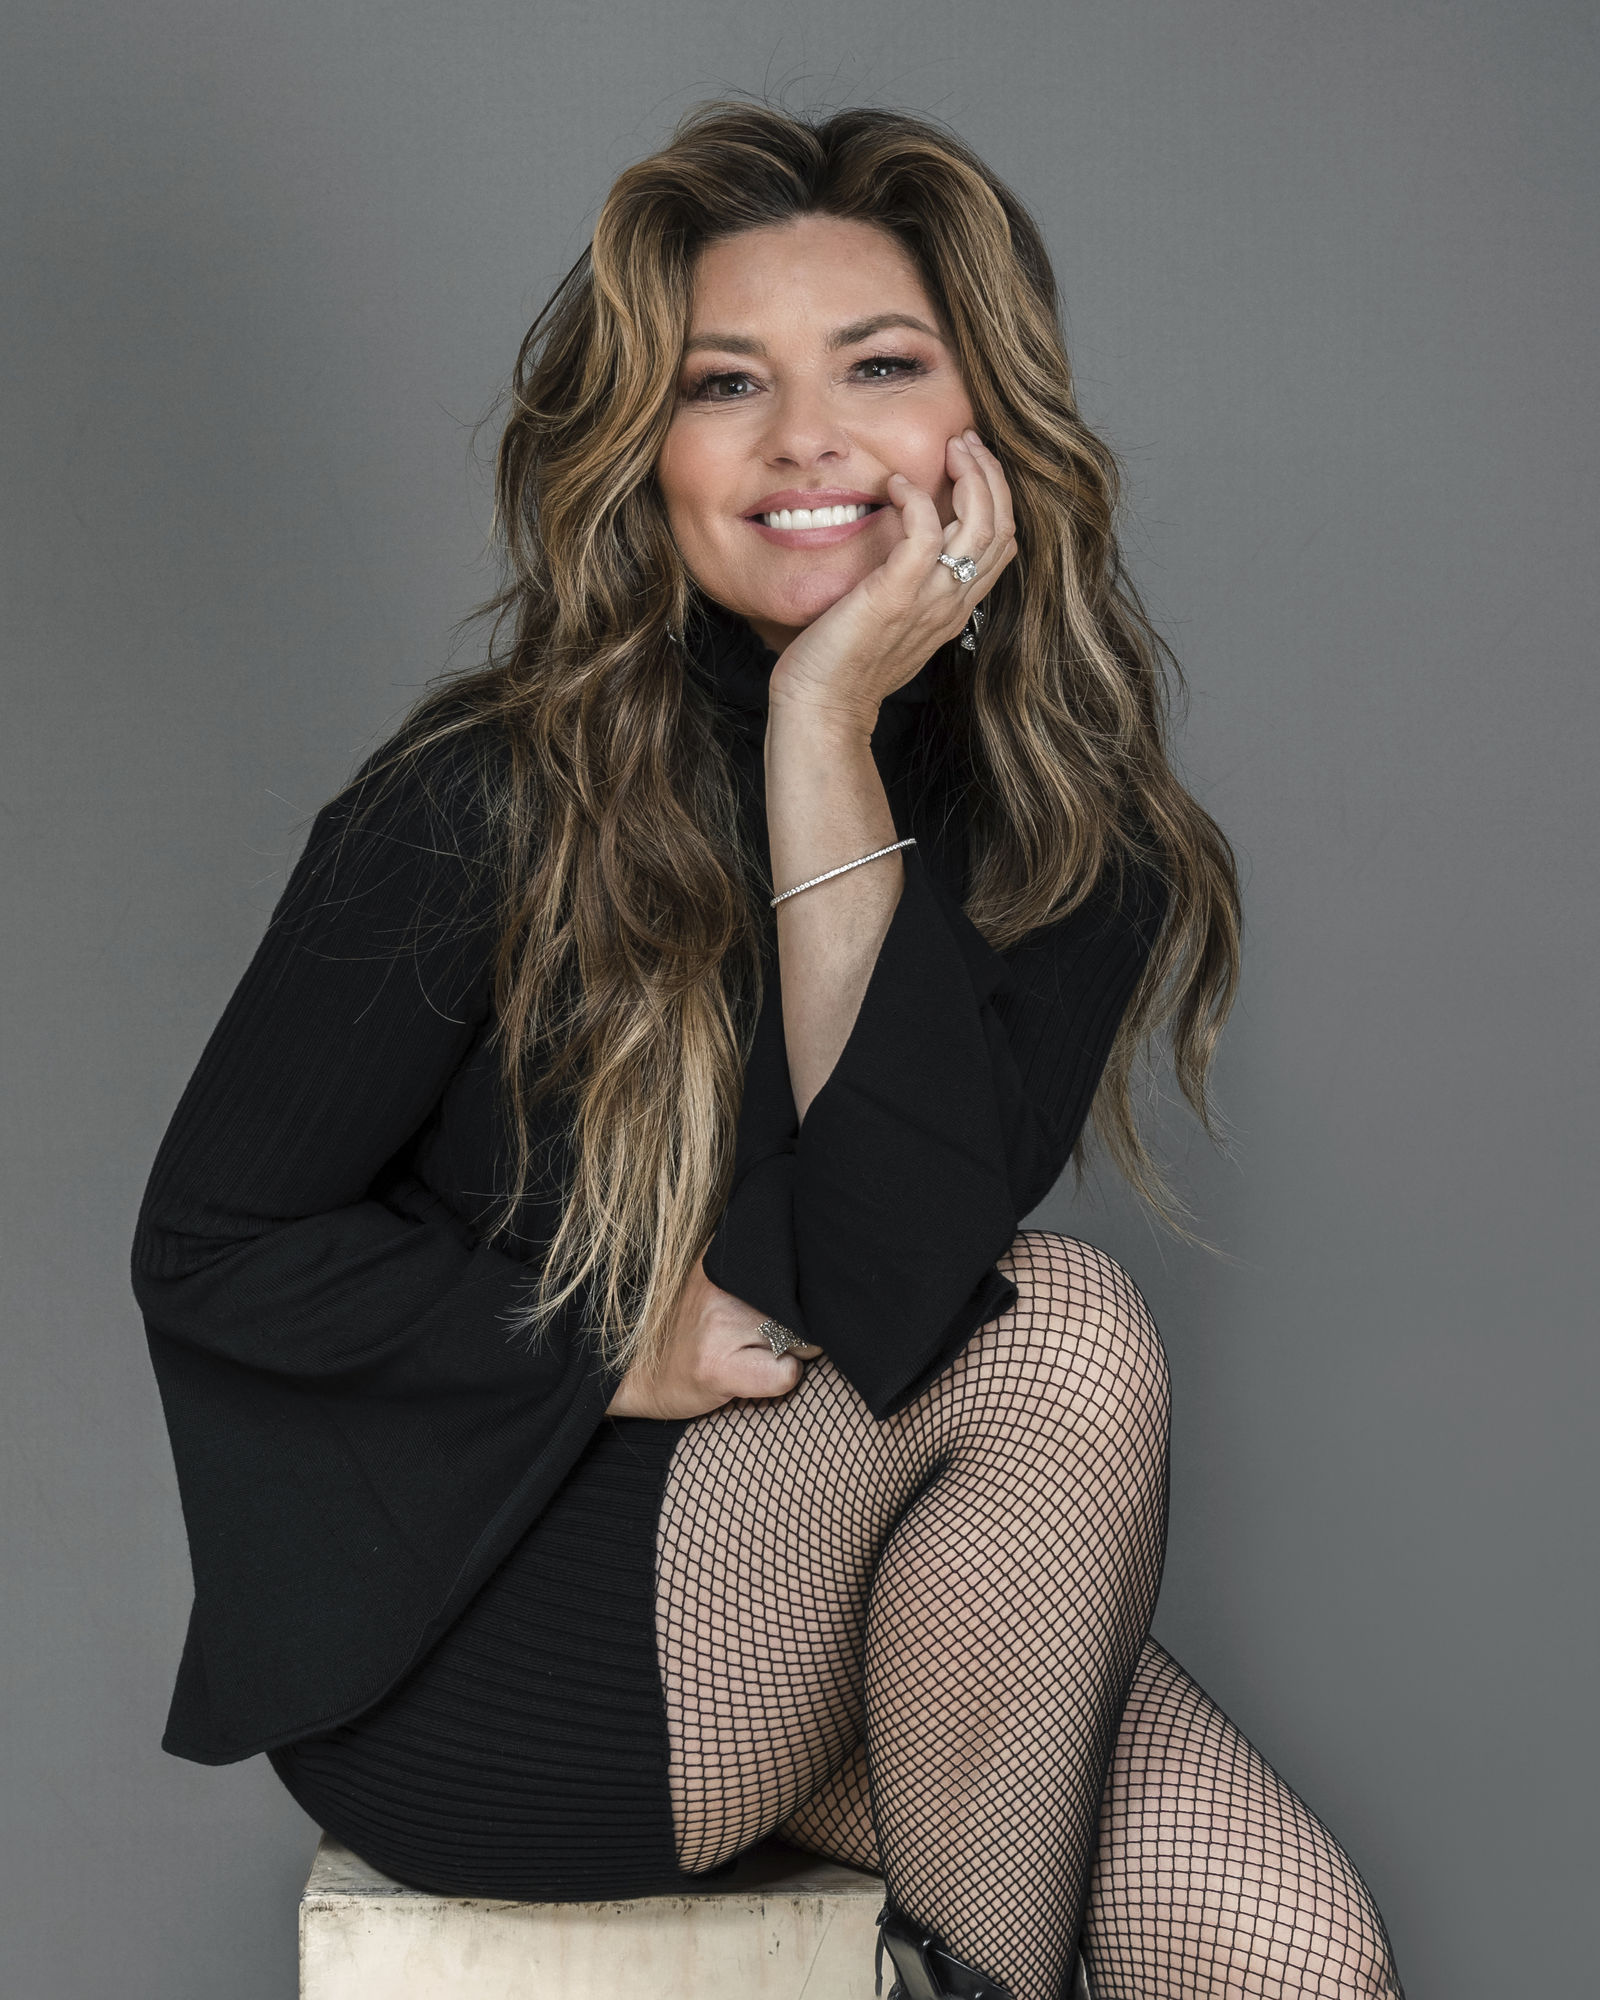 Shania Twain poses for a portrait at her Manhattan hotel, Friday, June 14, 2019, in New York.. (Photo by Christopher Smith/Invision/AP)